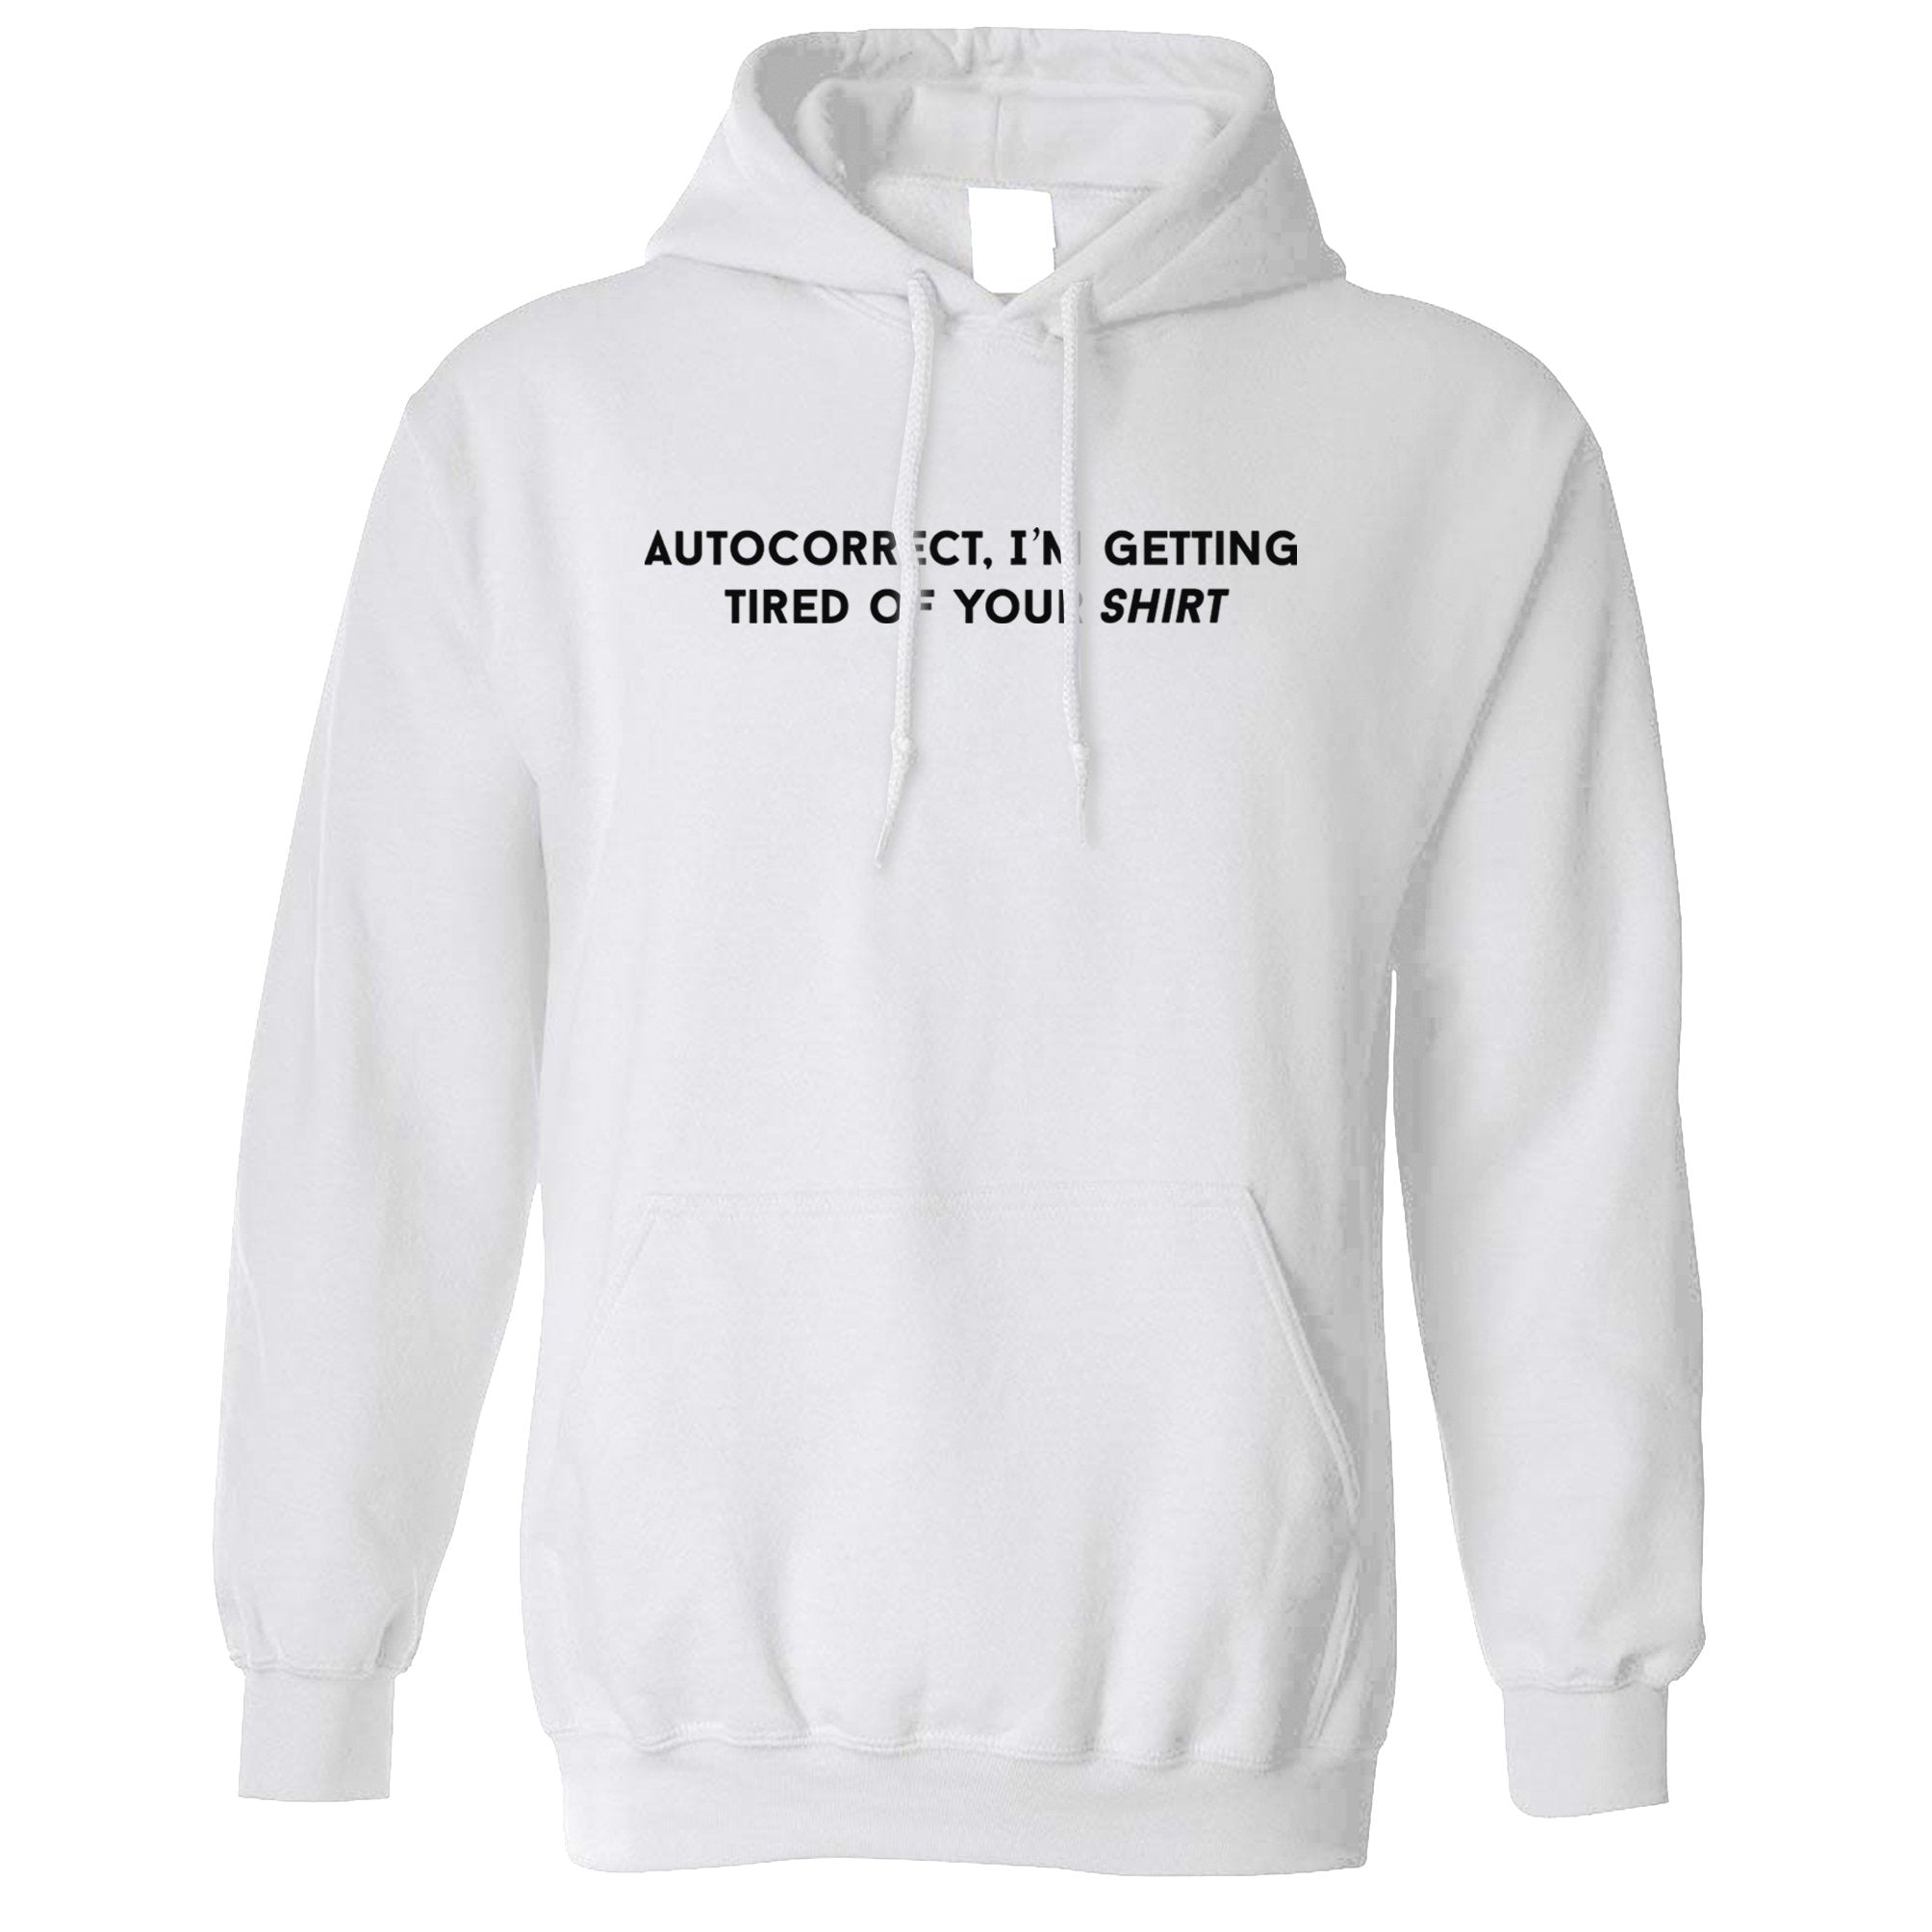 Novelty Hoodie Autocorrect, I'm Tired Of Your Shirt Hooded Jumper